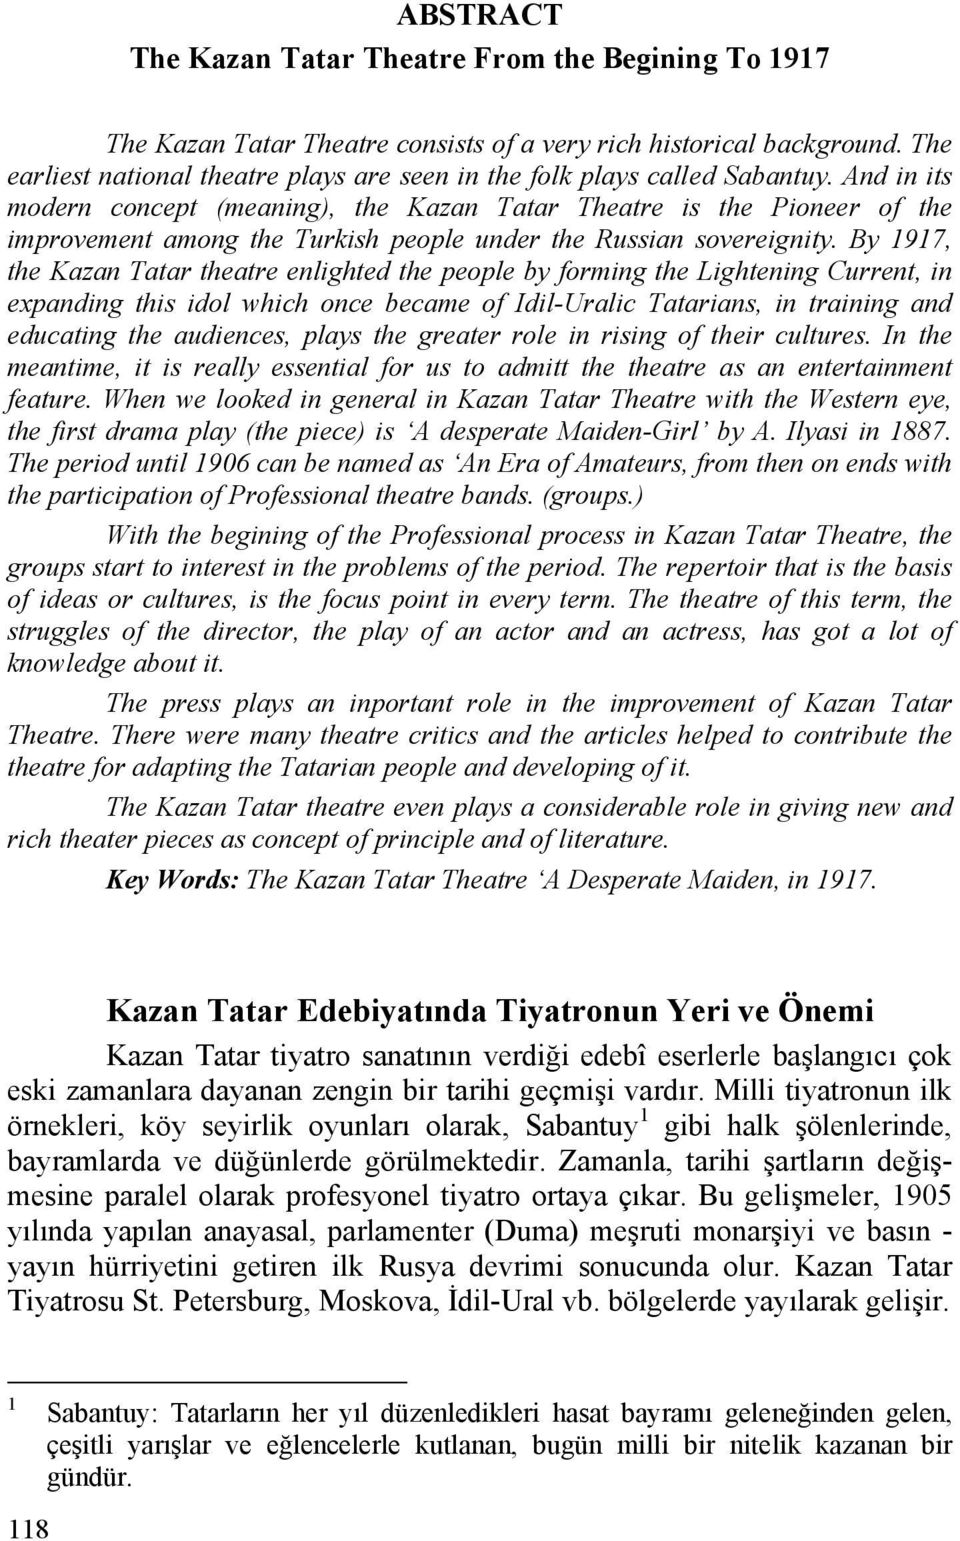 And in its modern concept (meaning), the Kazan Tatar Theatre is the Pioneer of the improvement among the Turkish people under the Russian sovereignity.